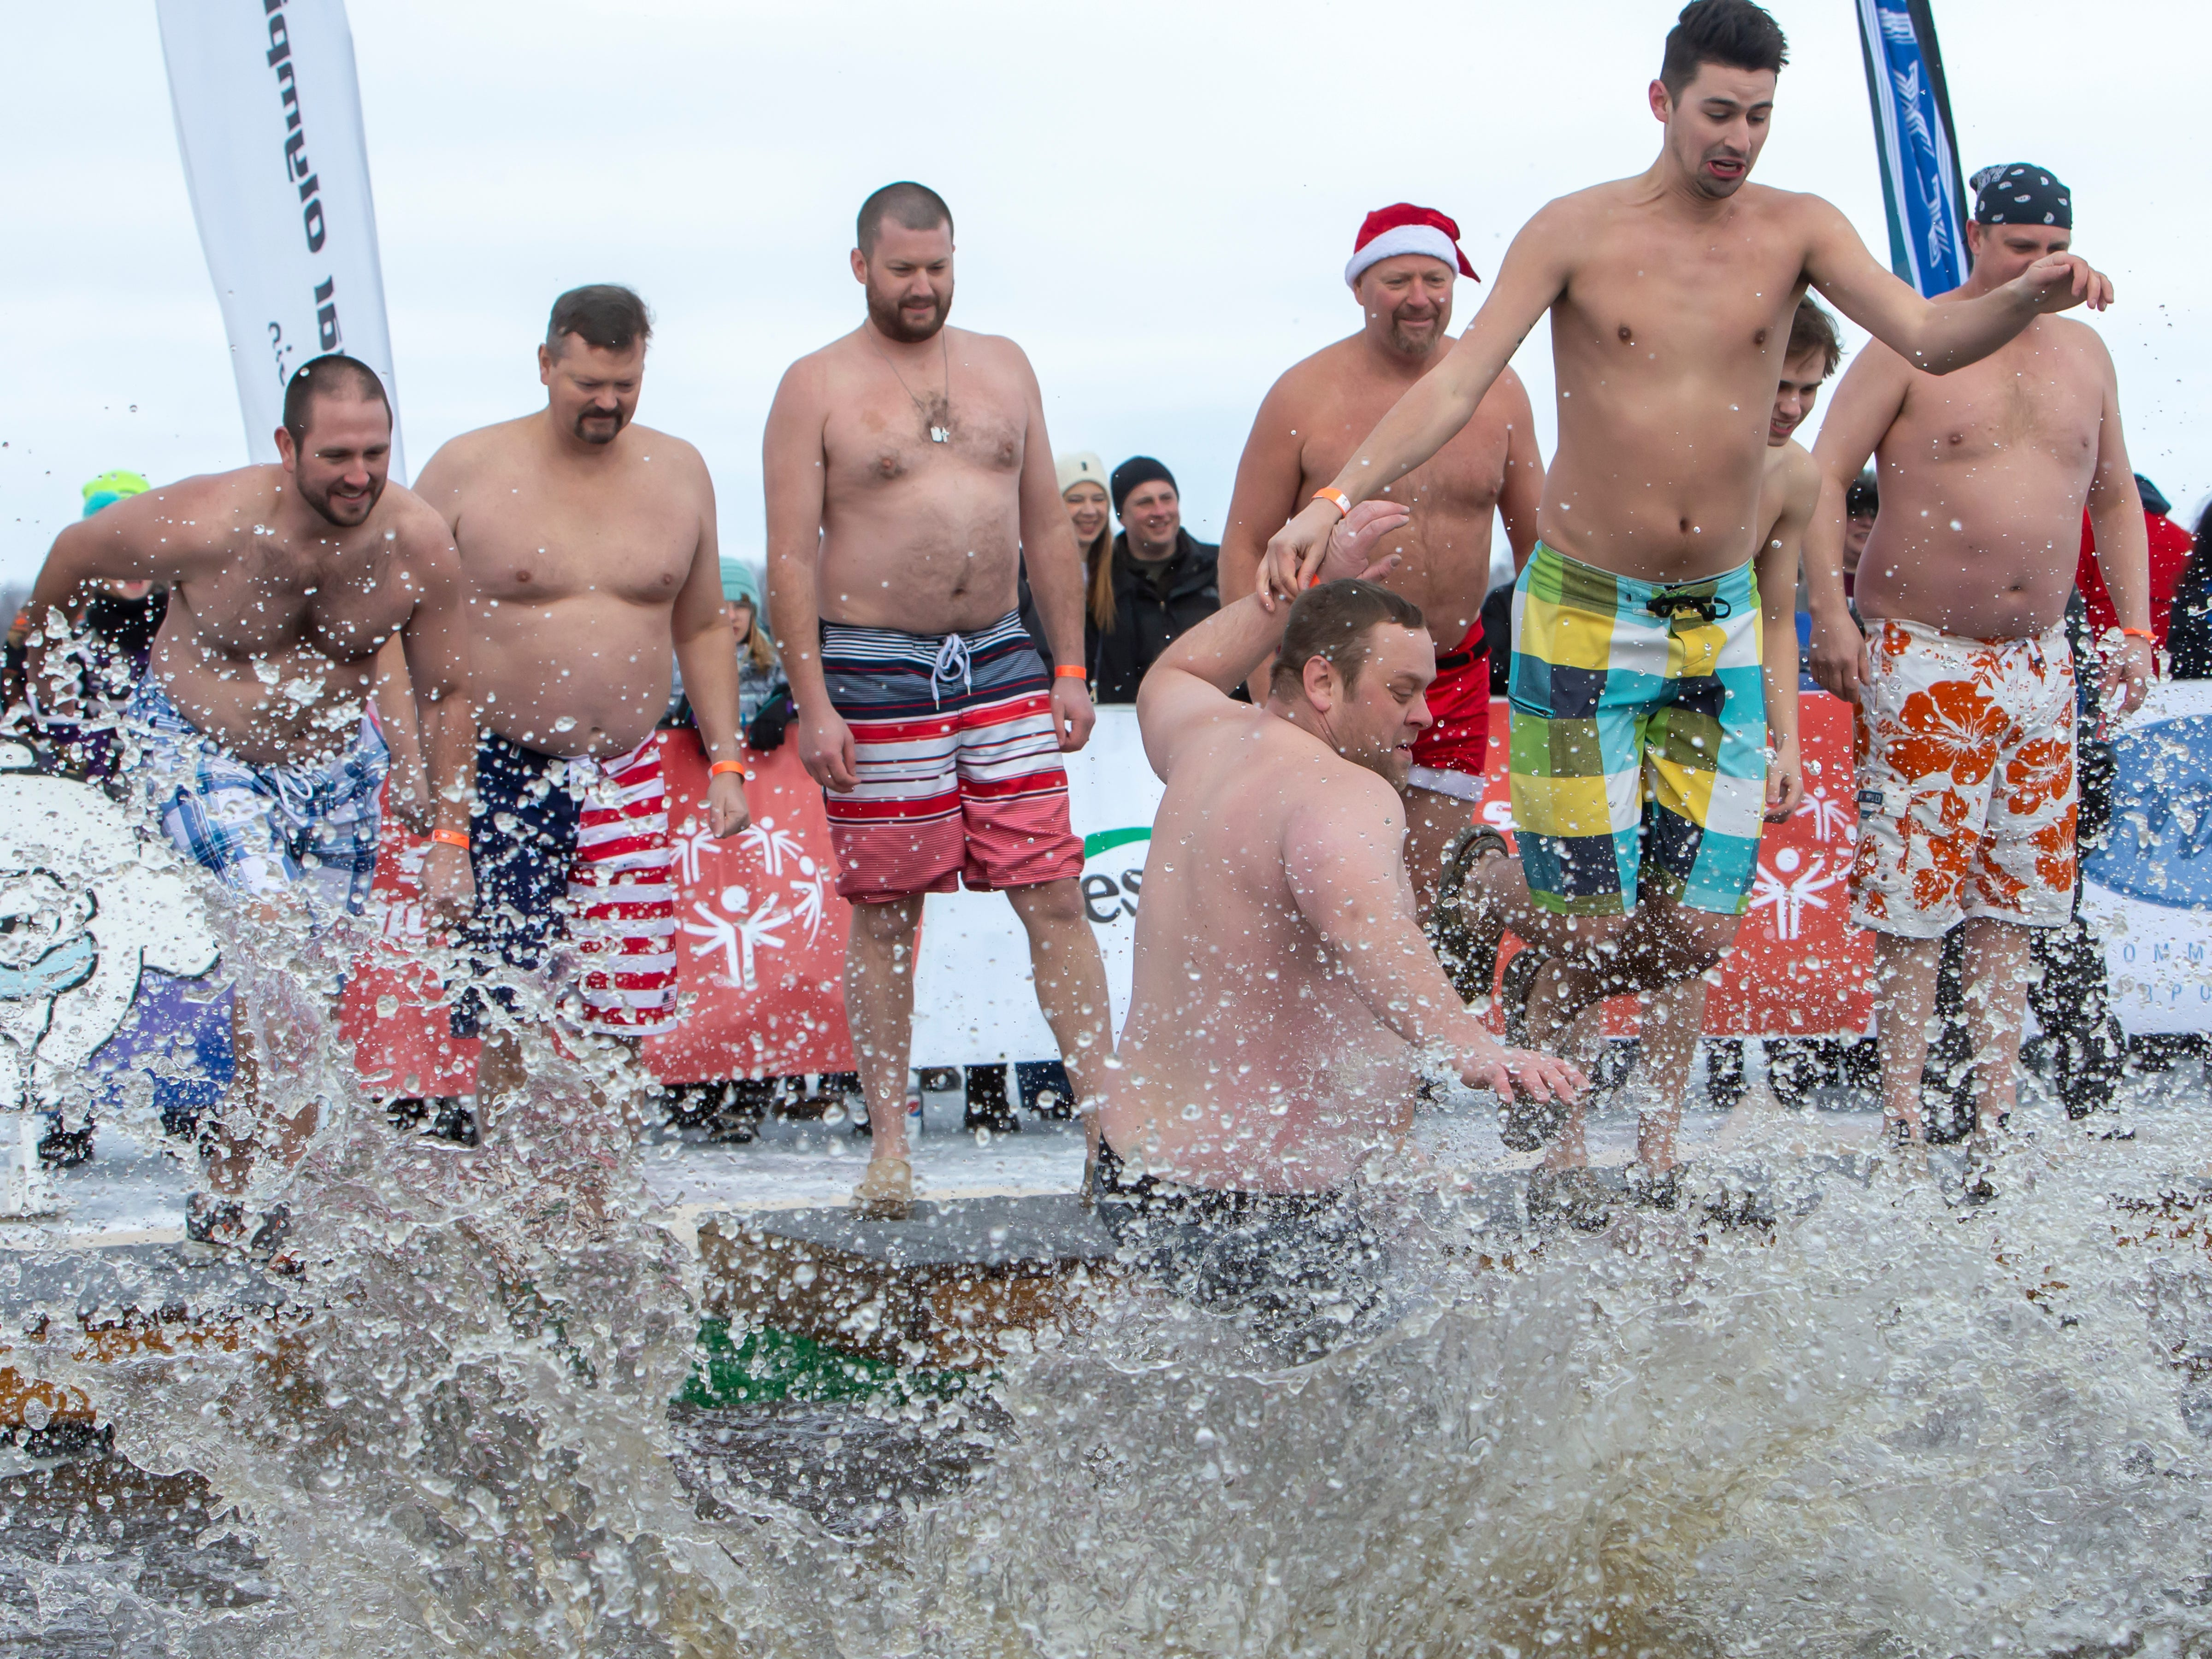 Groups of people jump together during the Special Olympics Wisconsin Polar Plunge in Oshkosh, Wis., on Saturday, February 16, 2019, at Miller's Bay in Menominee Park.